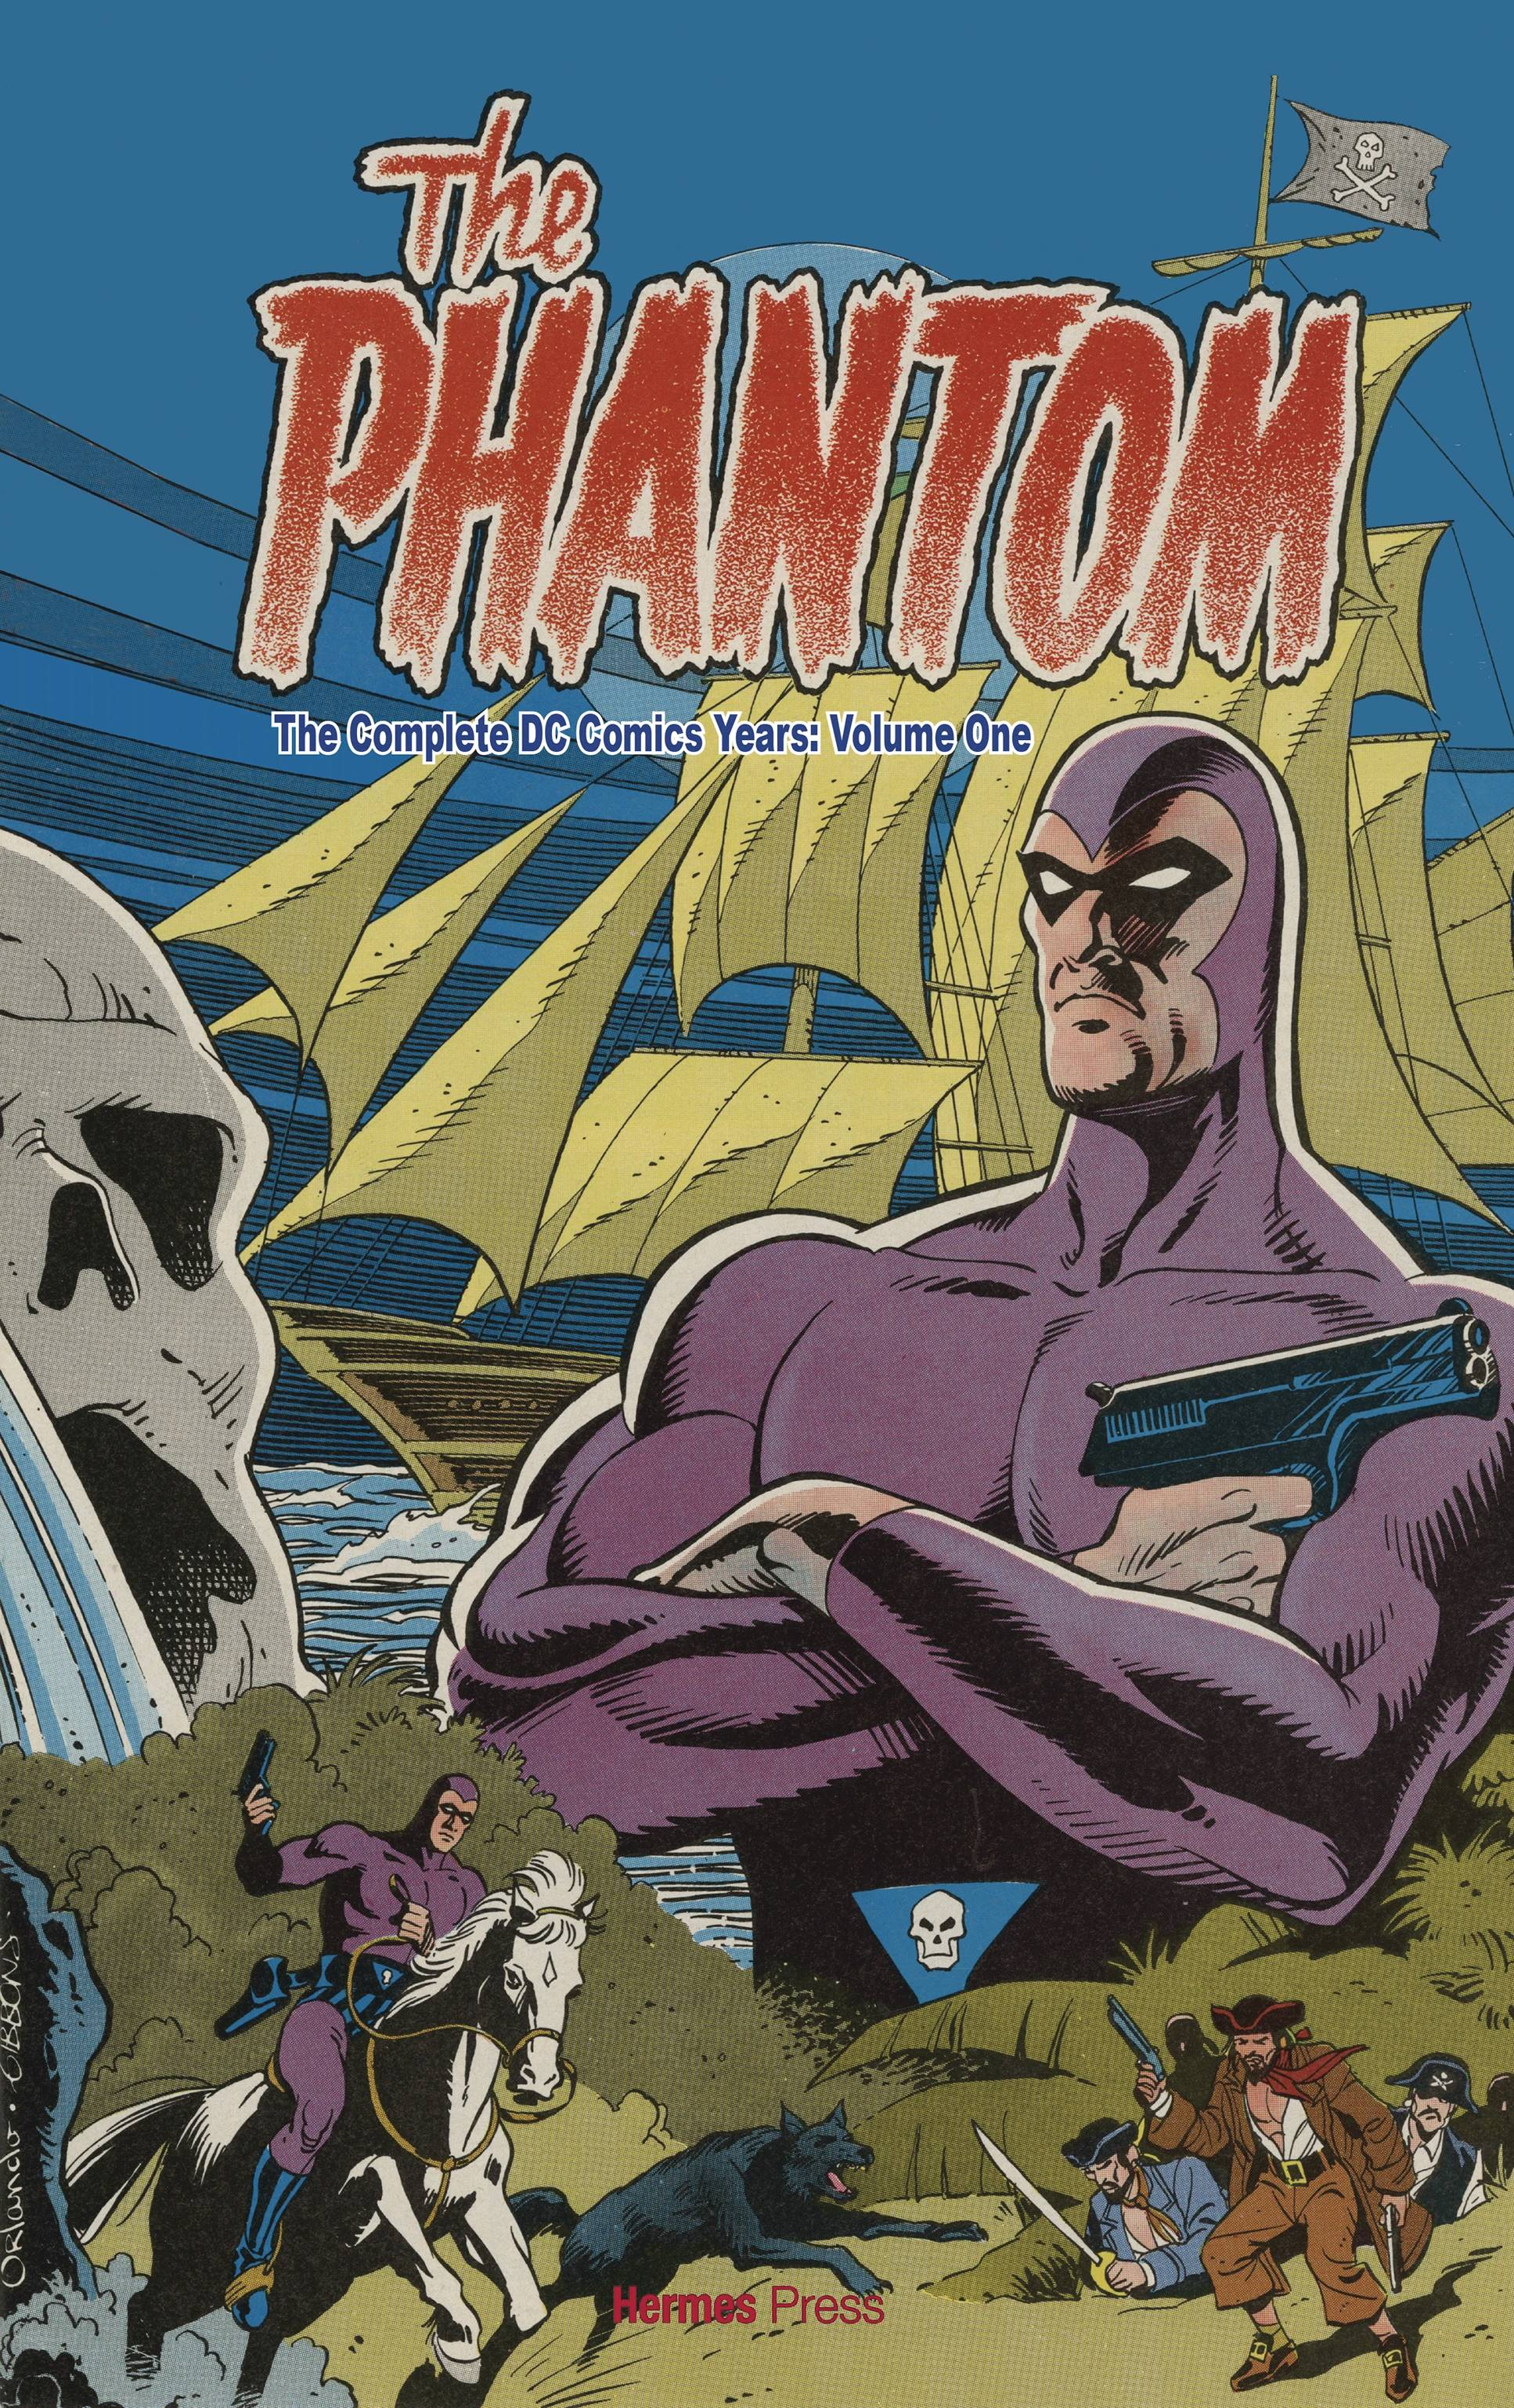 COMPLETE DC COMICS PHANTOM HC VOL 01 (OF 3)